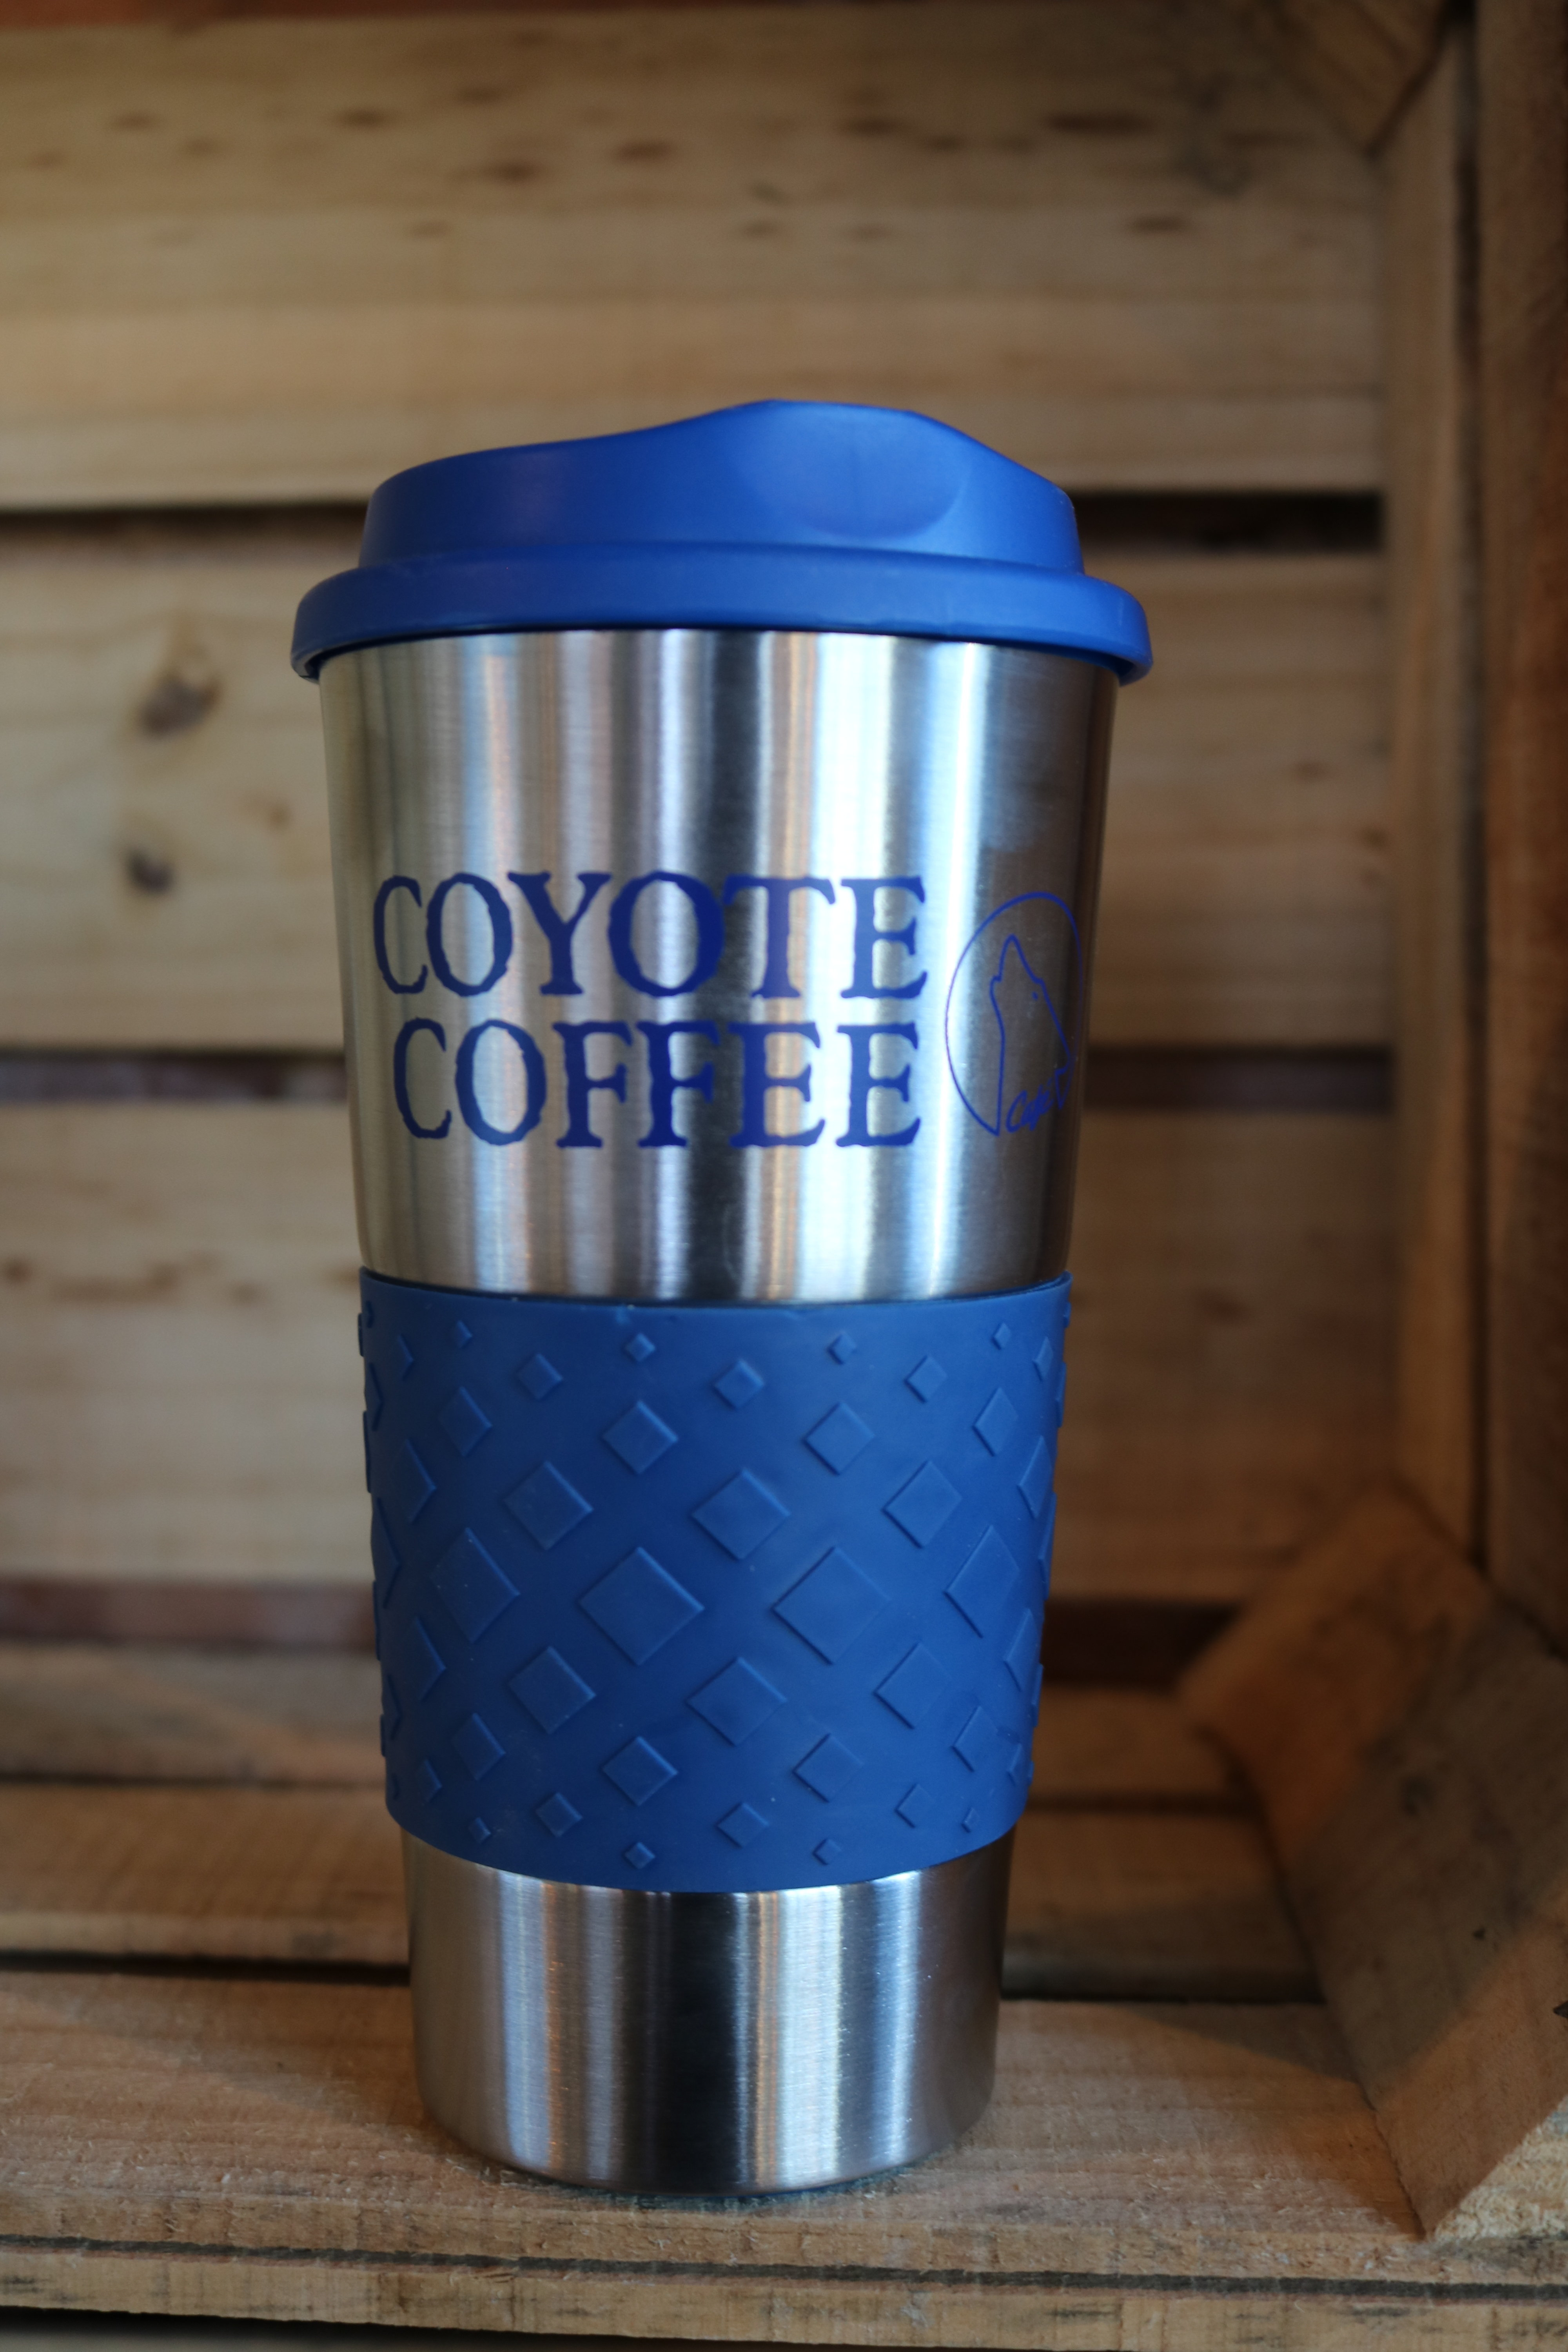 Coyote Coffee Blue and Silver Tumbler 00001